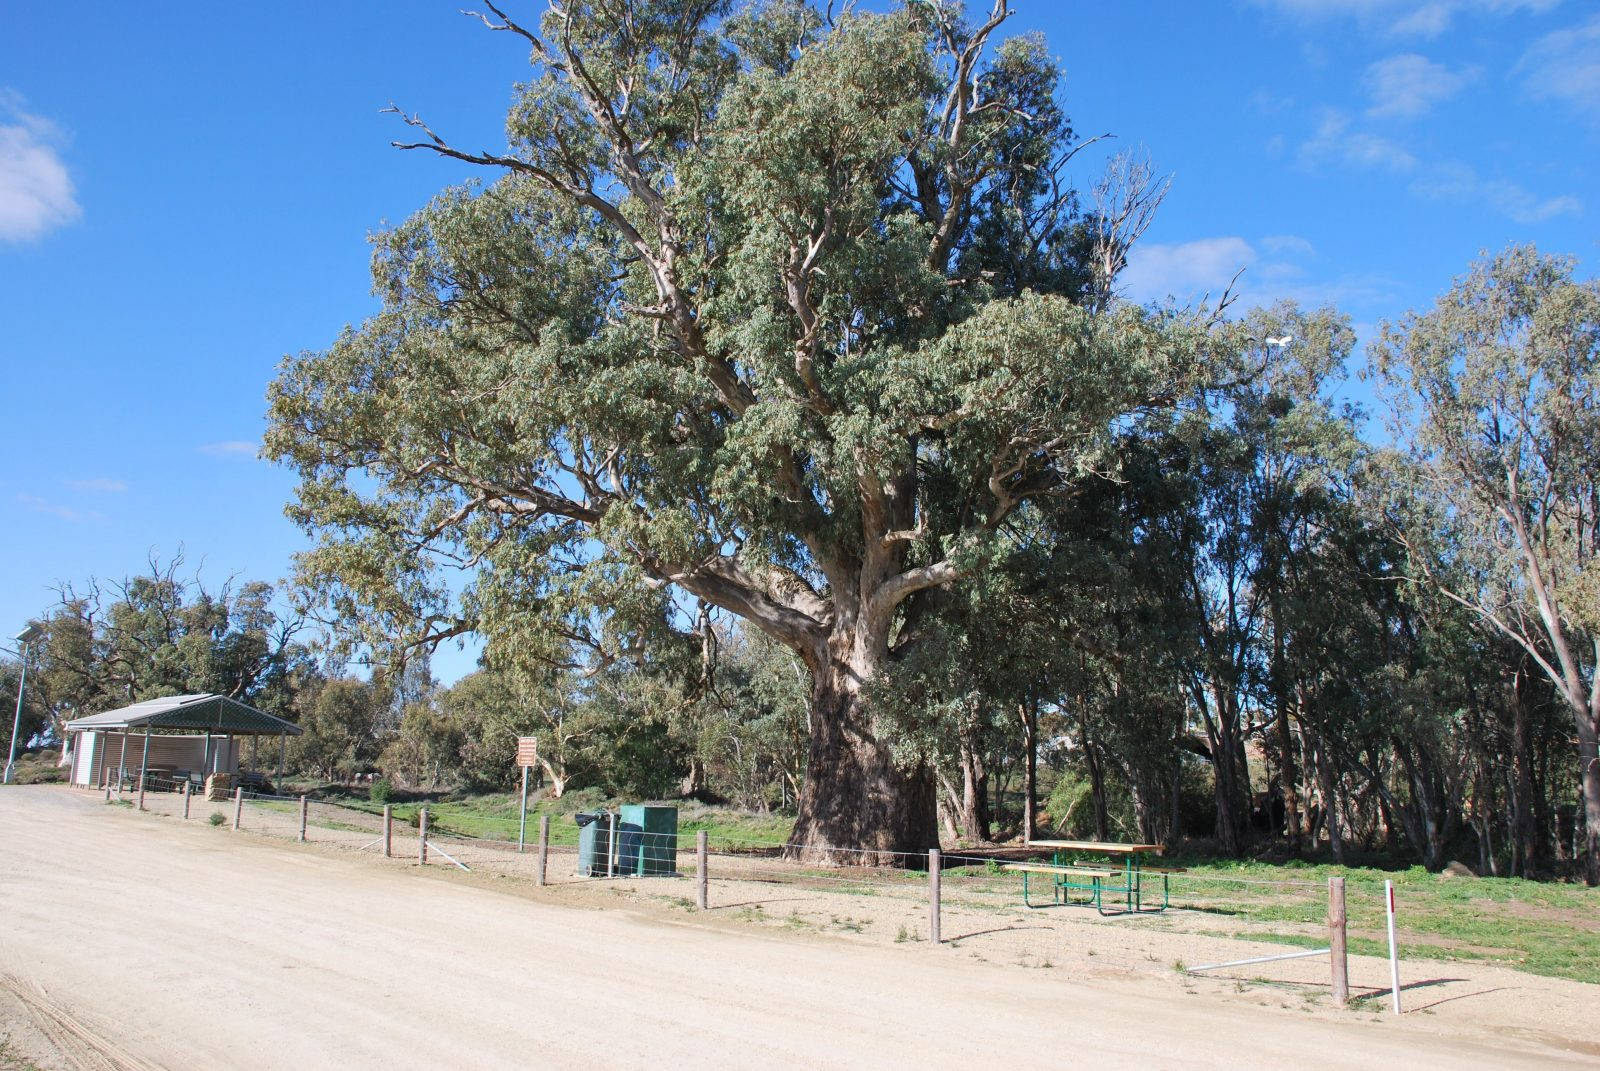 This is the giant Gum Tree